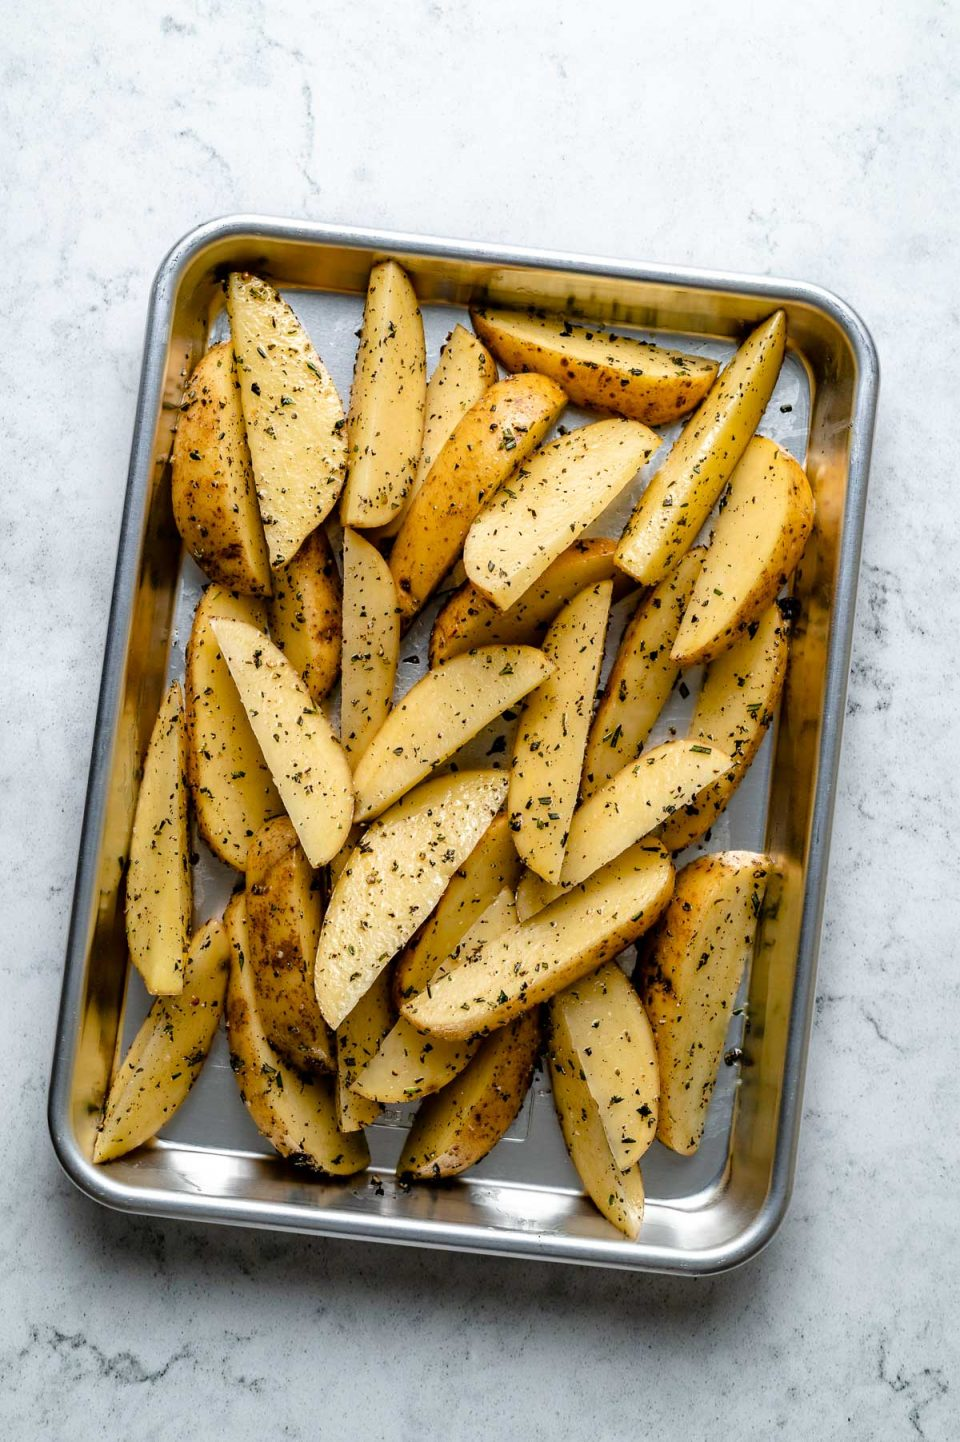 Multiple slices of potato cut in wedges & seasoned with avocado oil, kosher salt, & ground black pepper arranged on an aluminum baking sheet. The baking sheet sits on top of a white & gray marble surface.